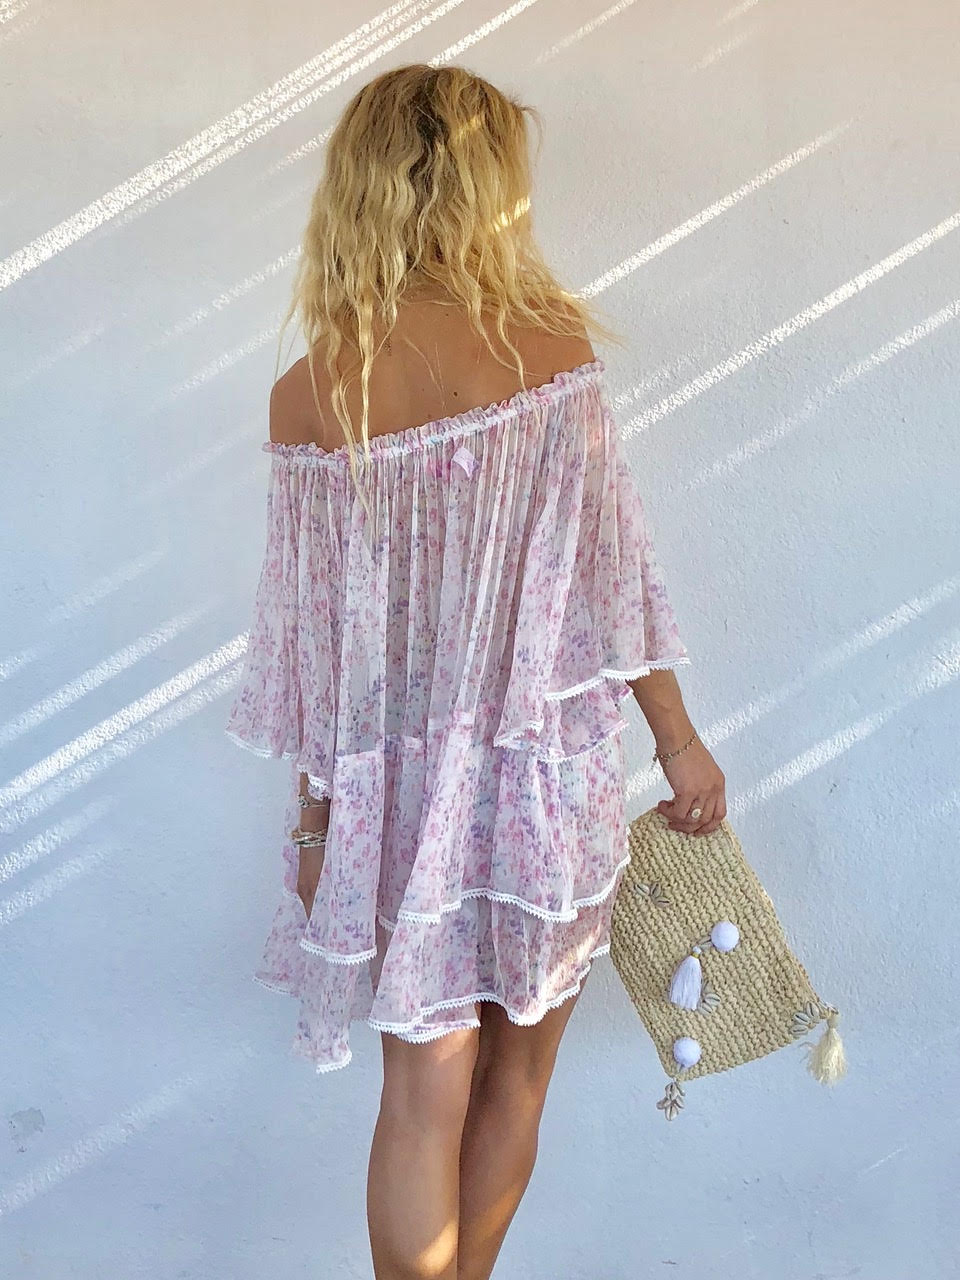 vetement boheme chic les neobourgeoises tunique boheme robe boheme clothe boheme tunique chic vetement tunique fashion brand les neobourgeoises resortwear nice,